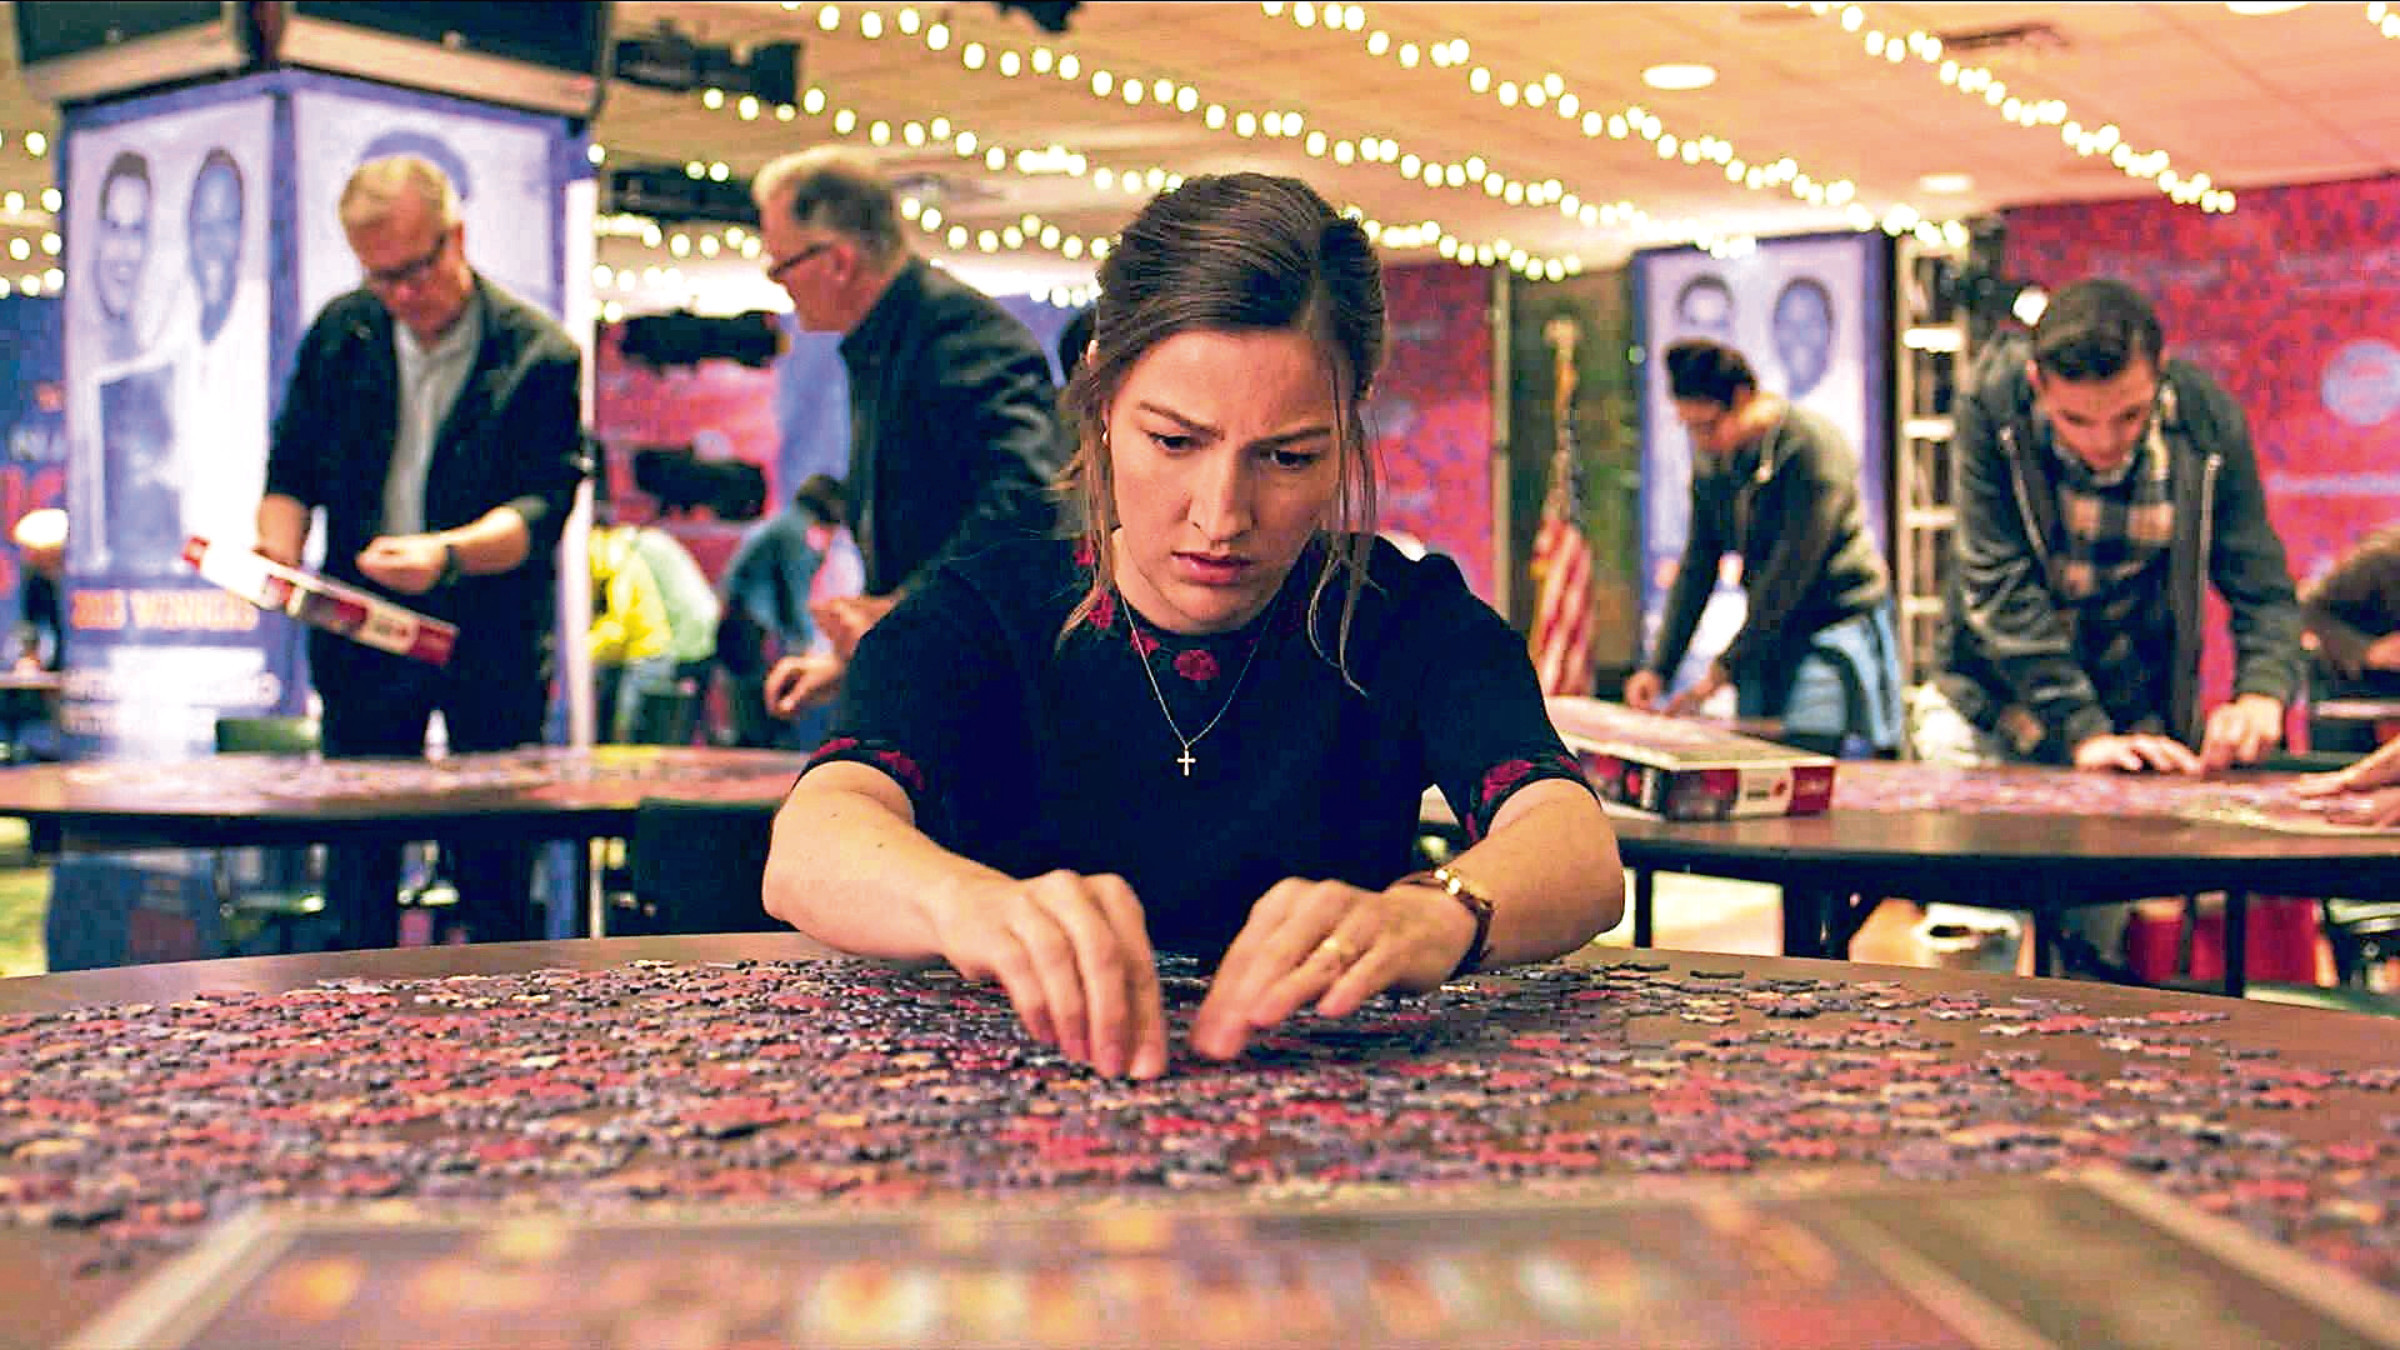 Kelly Macdonald in Puzzle (Allstar/SONY PICTURES CLASSICS)